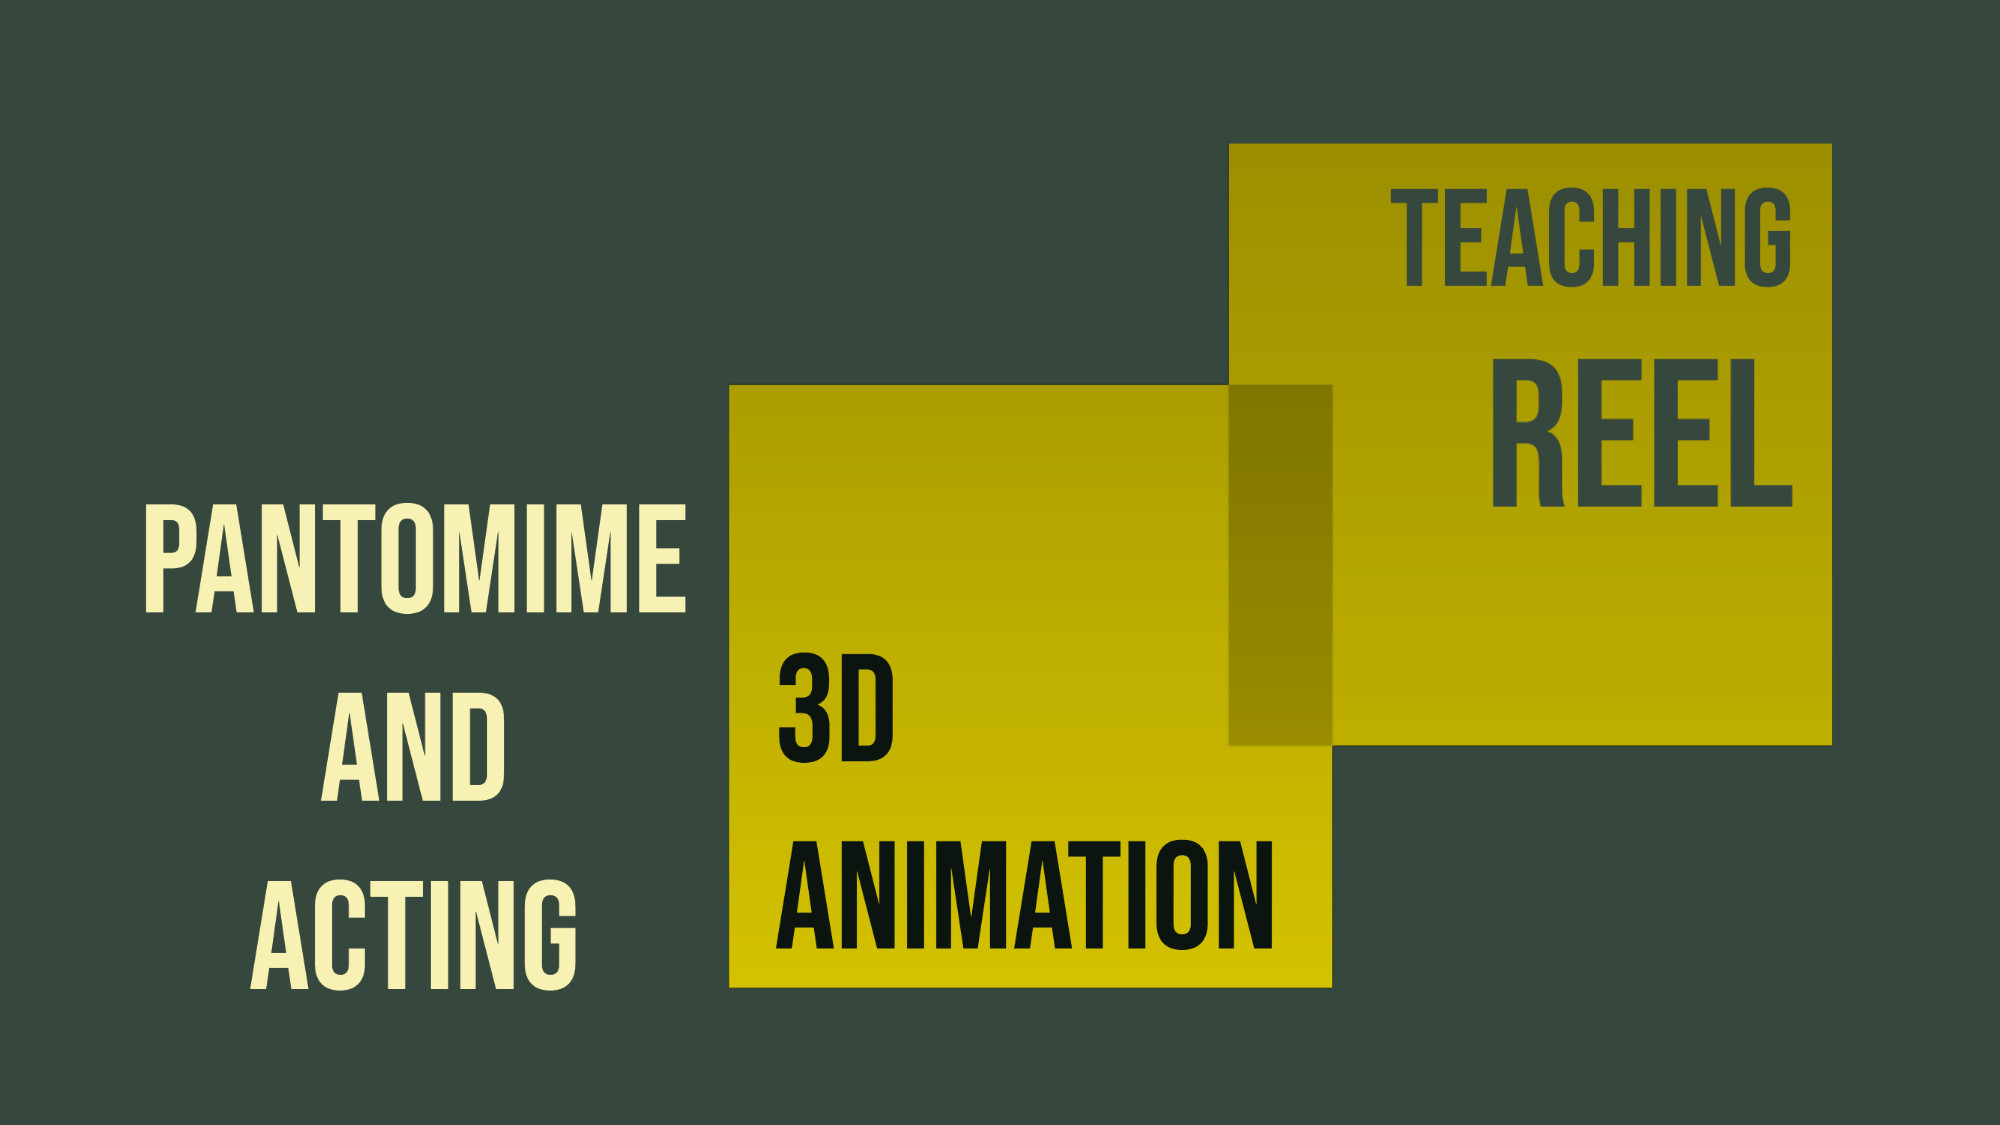 Pantomime and Acting. 3D Animation Teaching Reel, with Froggy Hearth Studio from Moldova/UK